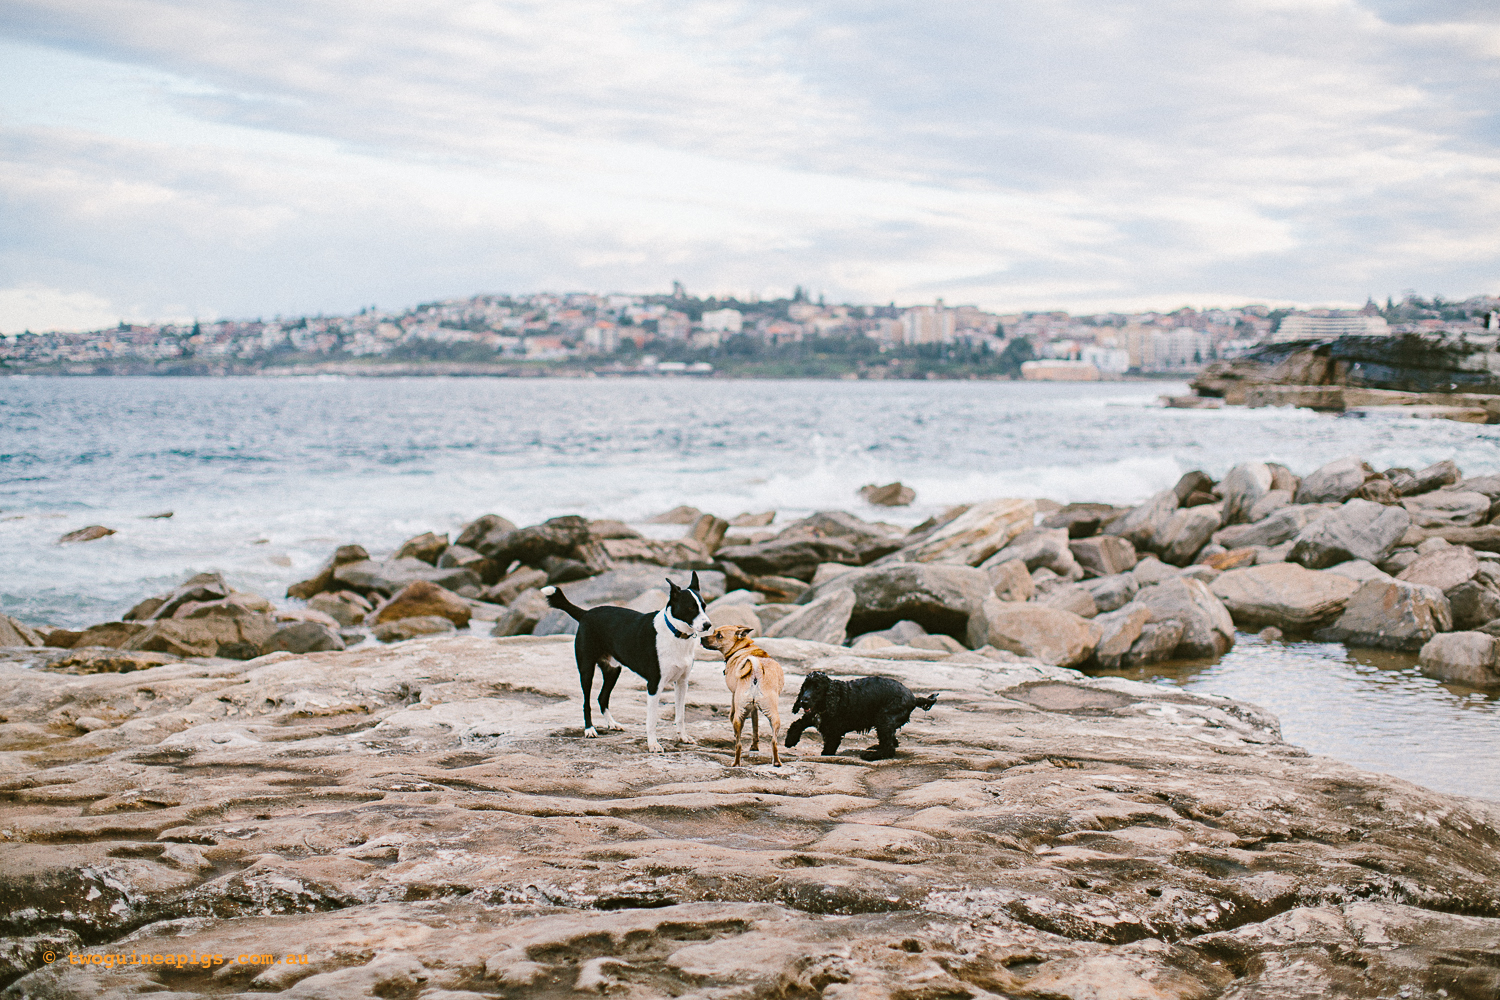 twoguineapigs_pet_photography_clovelly_landscapes_beach_dogs_1500-2.jpg